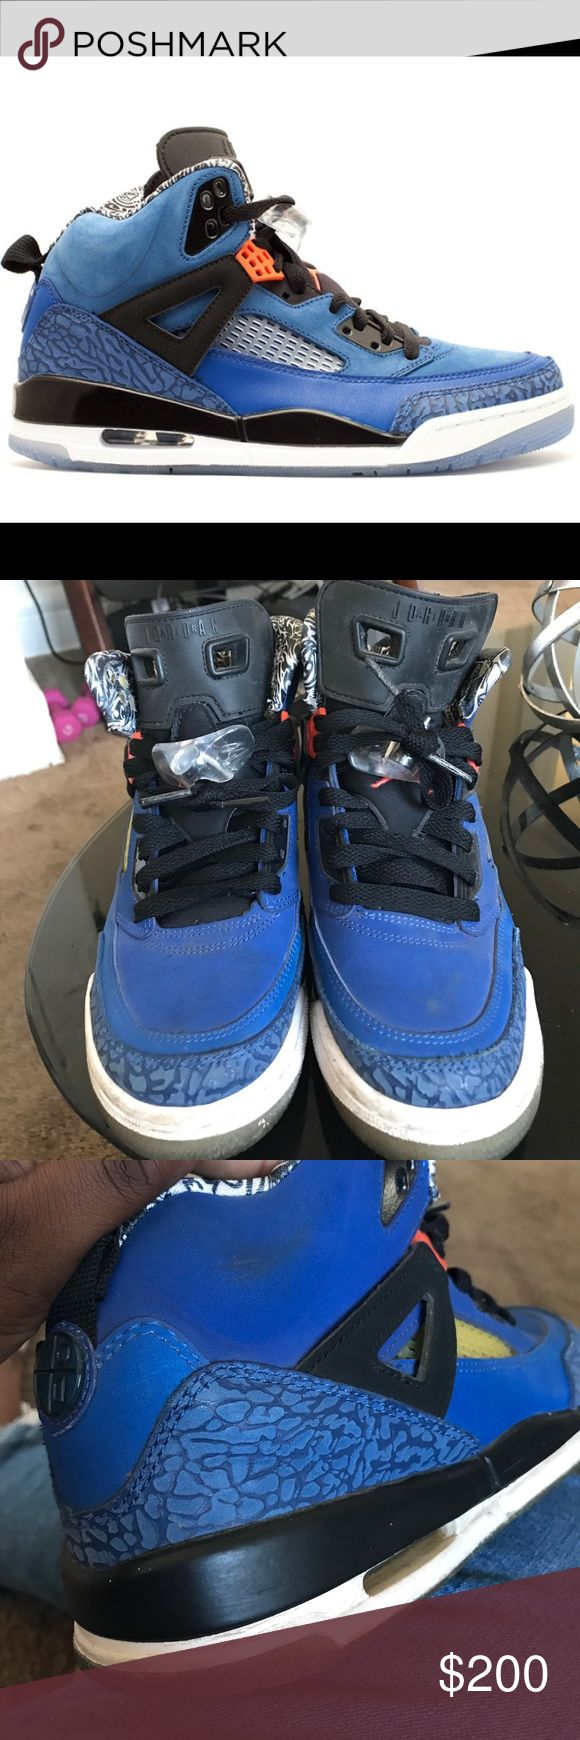 Retro Air Jordan Spizike Knicks Blue & Orange 100% authentic super rare Retro air Jordan's in knicks colors. In good condition -- in need of a little clean but no permanent flaws. Really love these so only willing to sell for a good offer. Size 6.5 in kids which is about 8 in women. Air Jordan Shoes Athletic Shoes